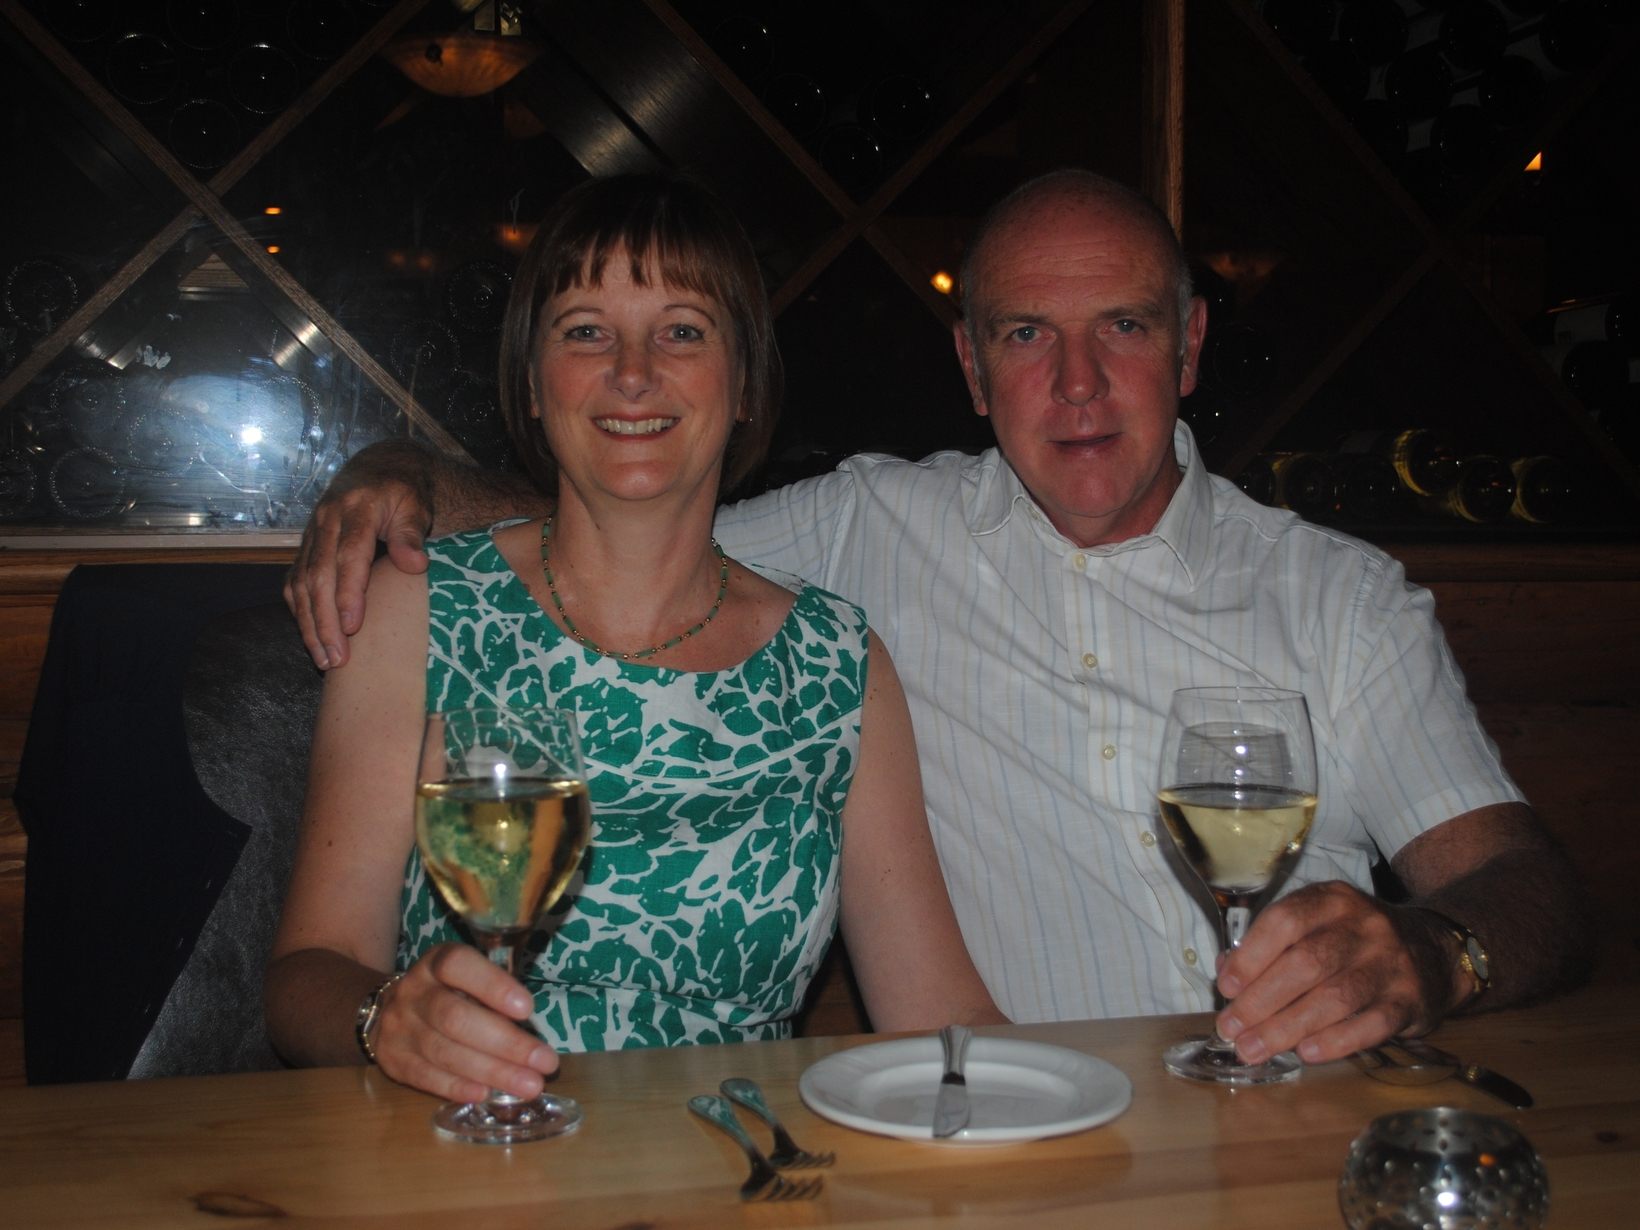 Peter & Liz from Vancouver, British Columbia, Canada